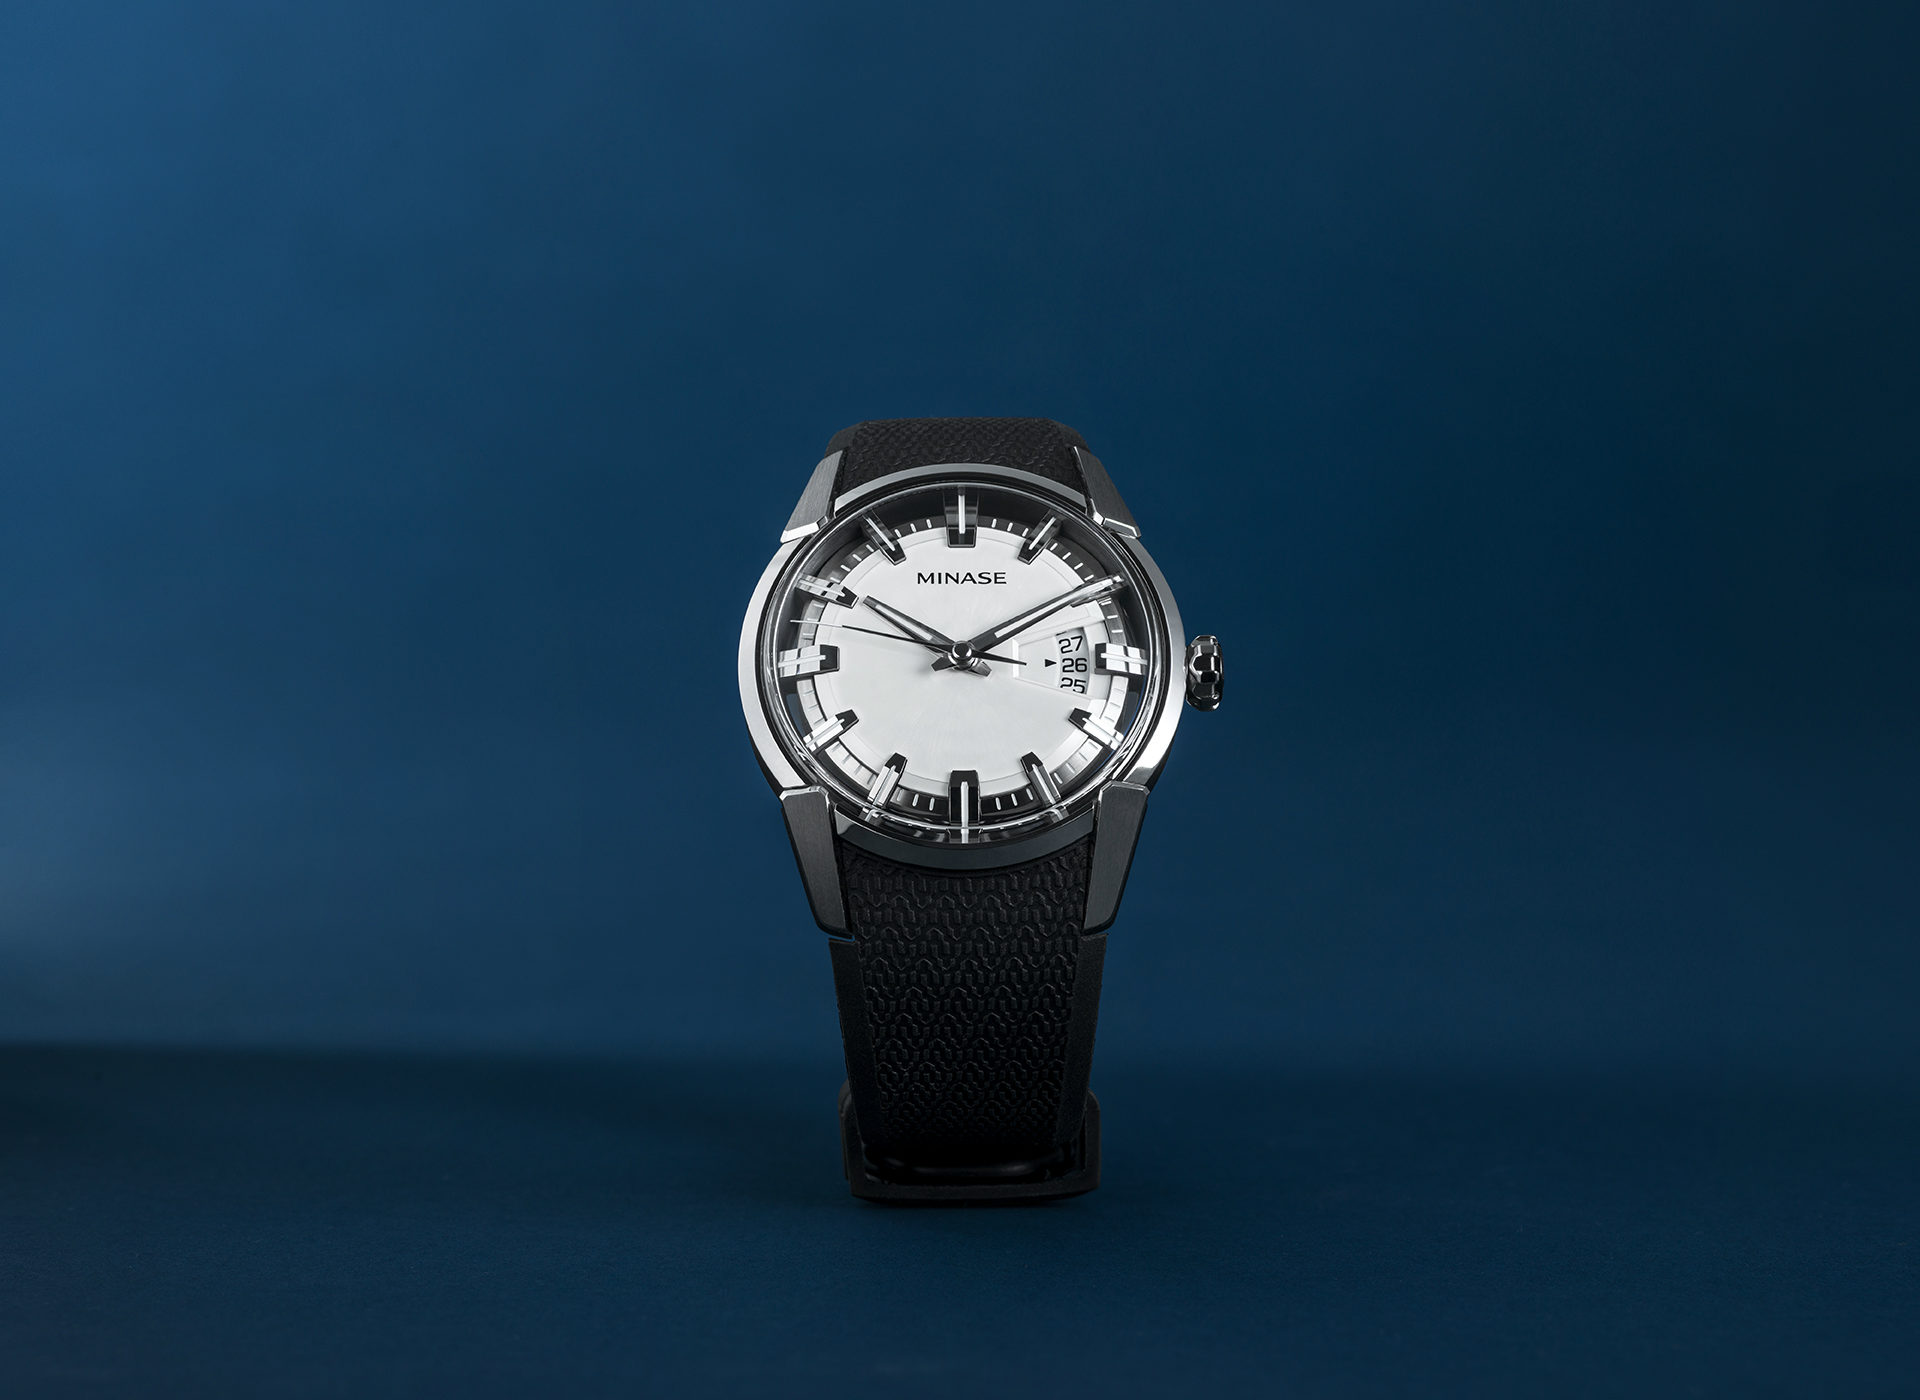 The Divido watch by Japanese watch brand Minase